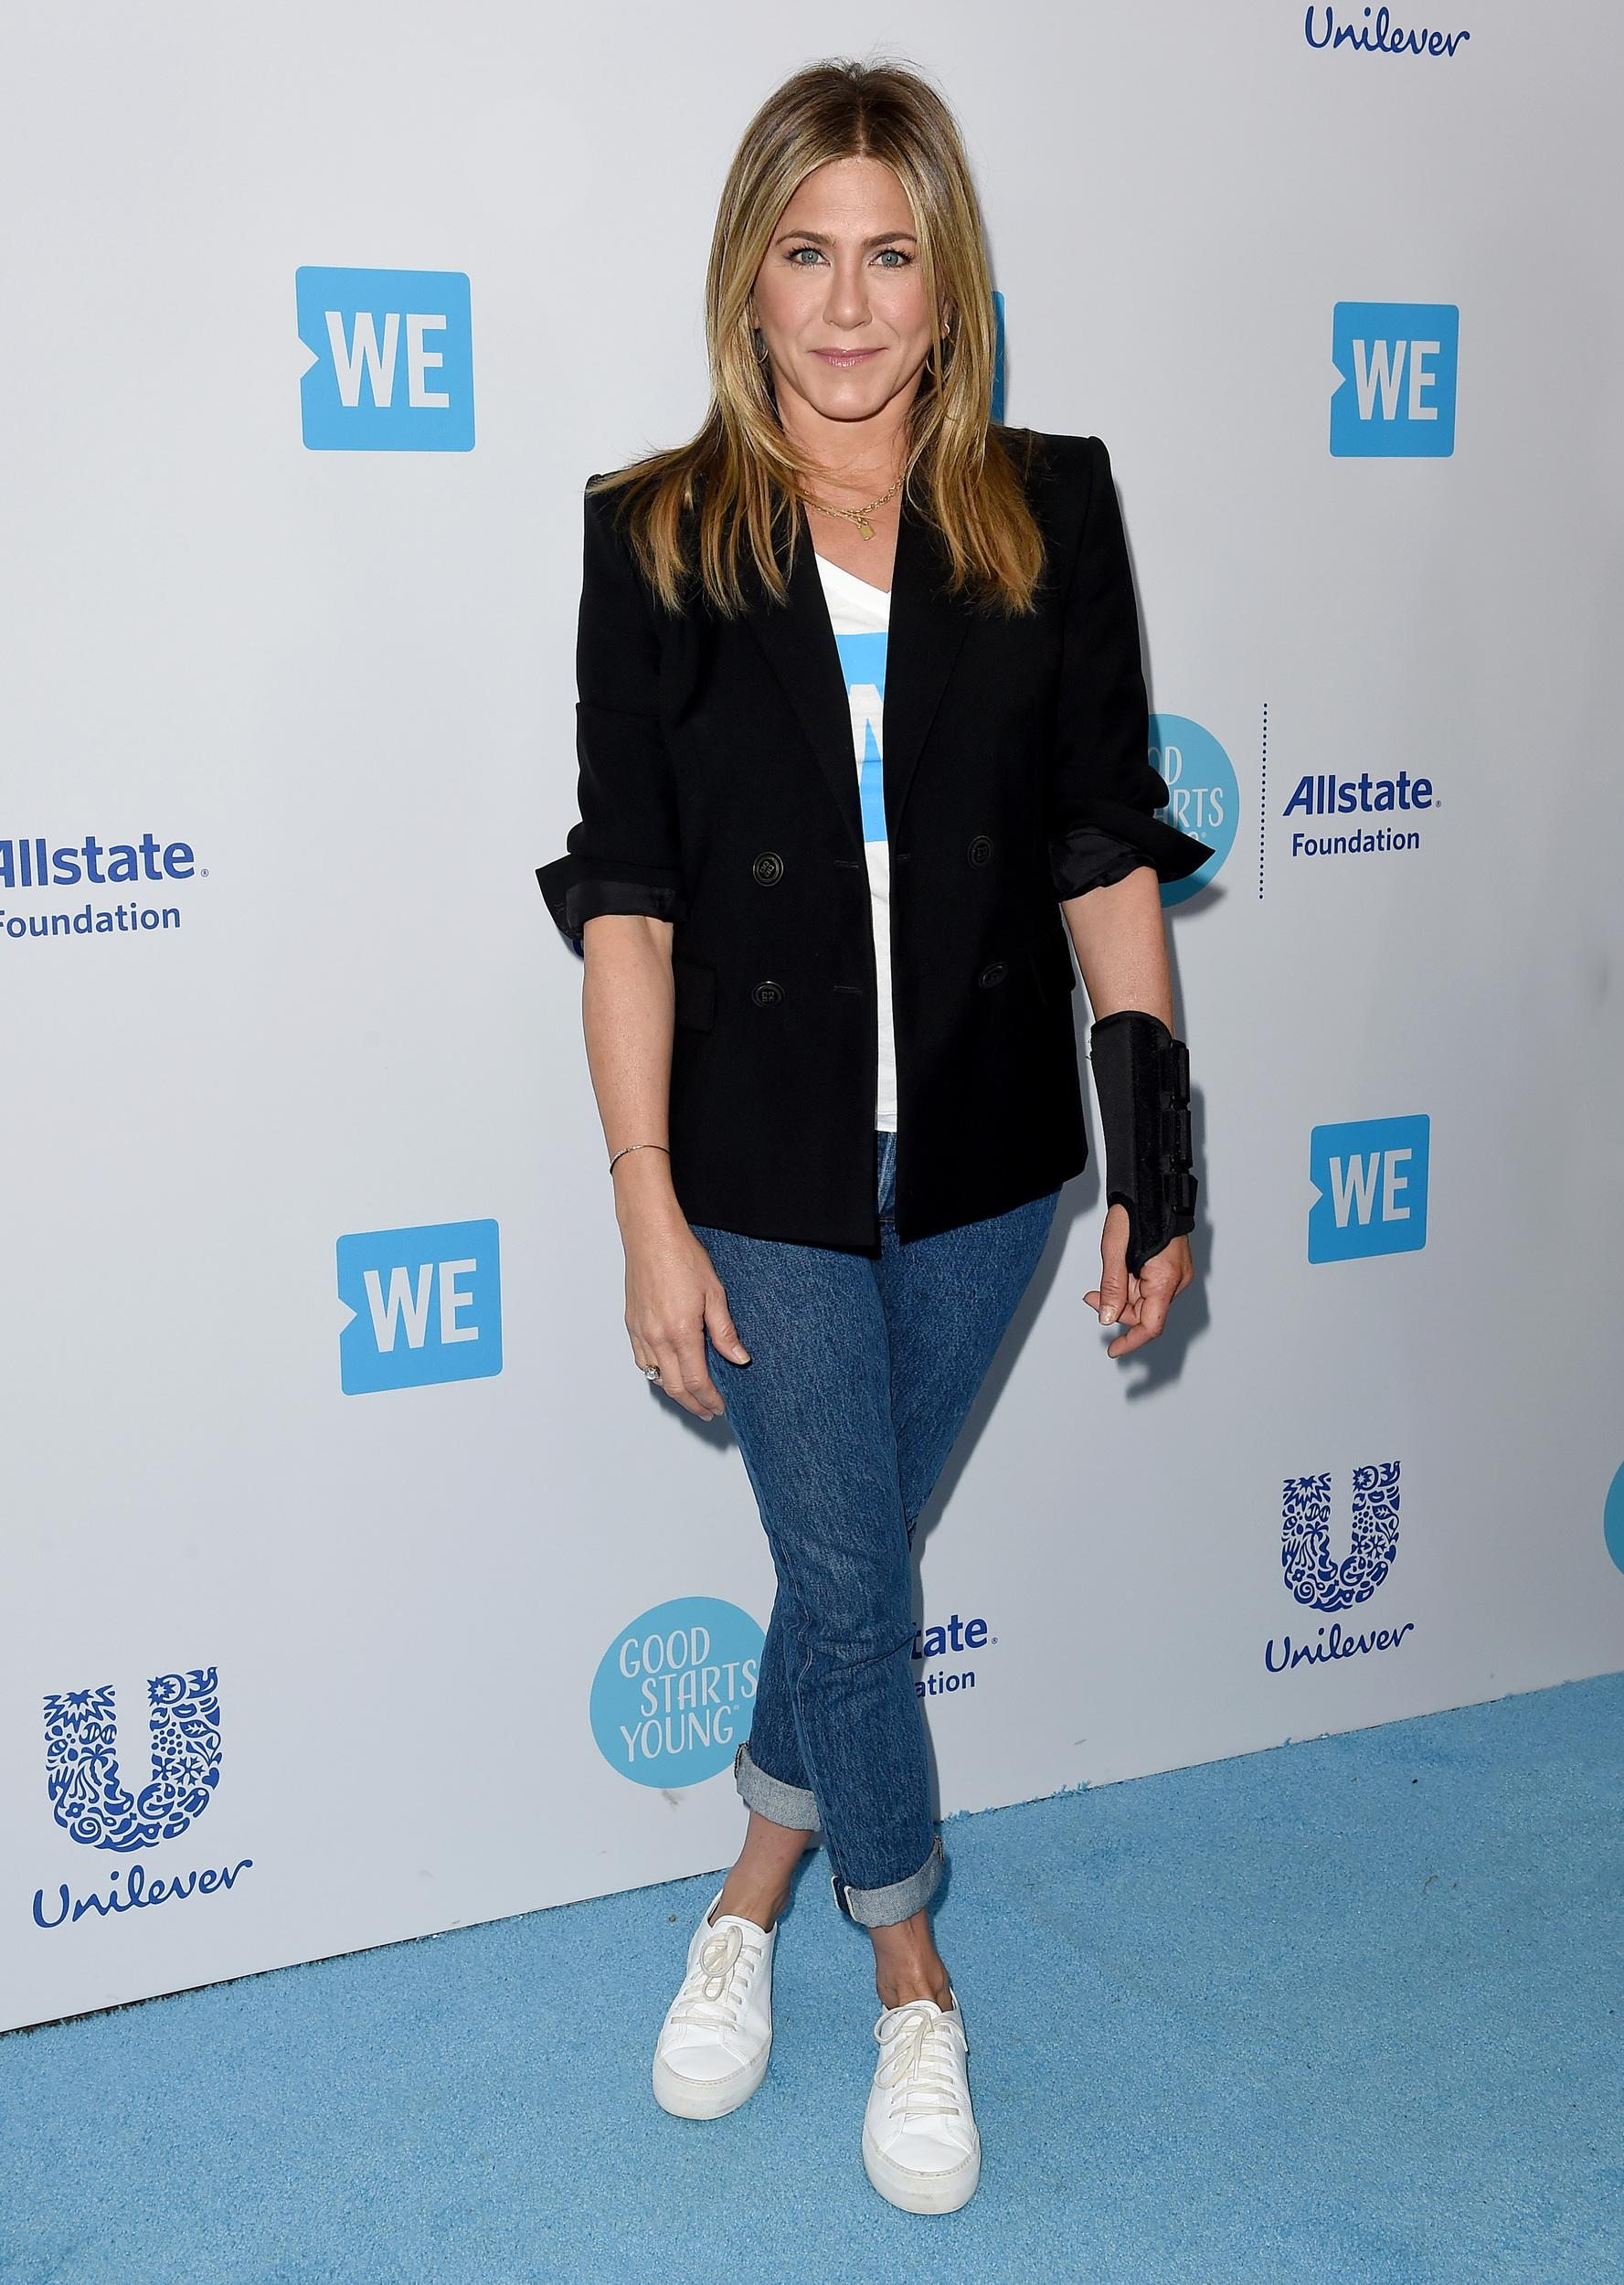 INGLEWOOD, CA - APRIL 19:  Actress Jennifer Aniston attends WE Day California at The Forum on April 19, 2018 in Inglewood, California.  (Photo by Axelle/Bauer-Griffin/FilmMagic)